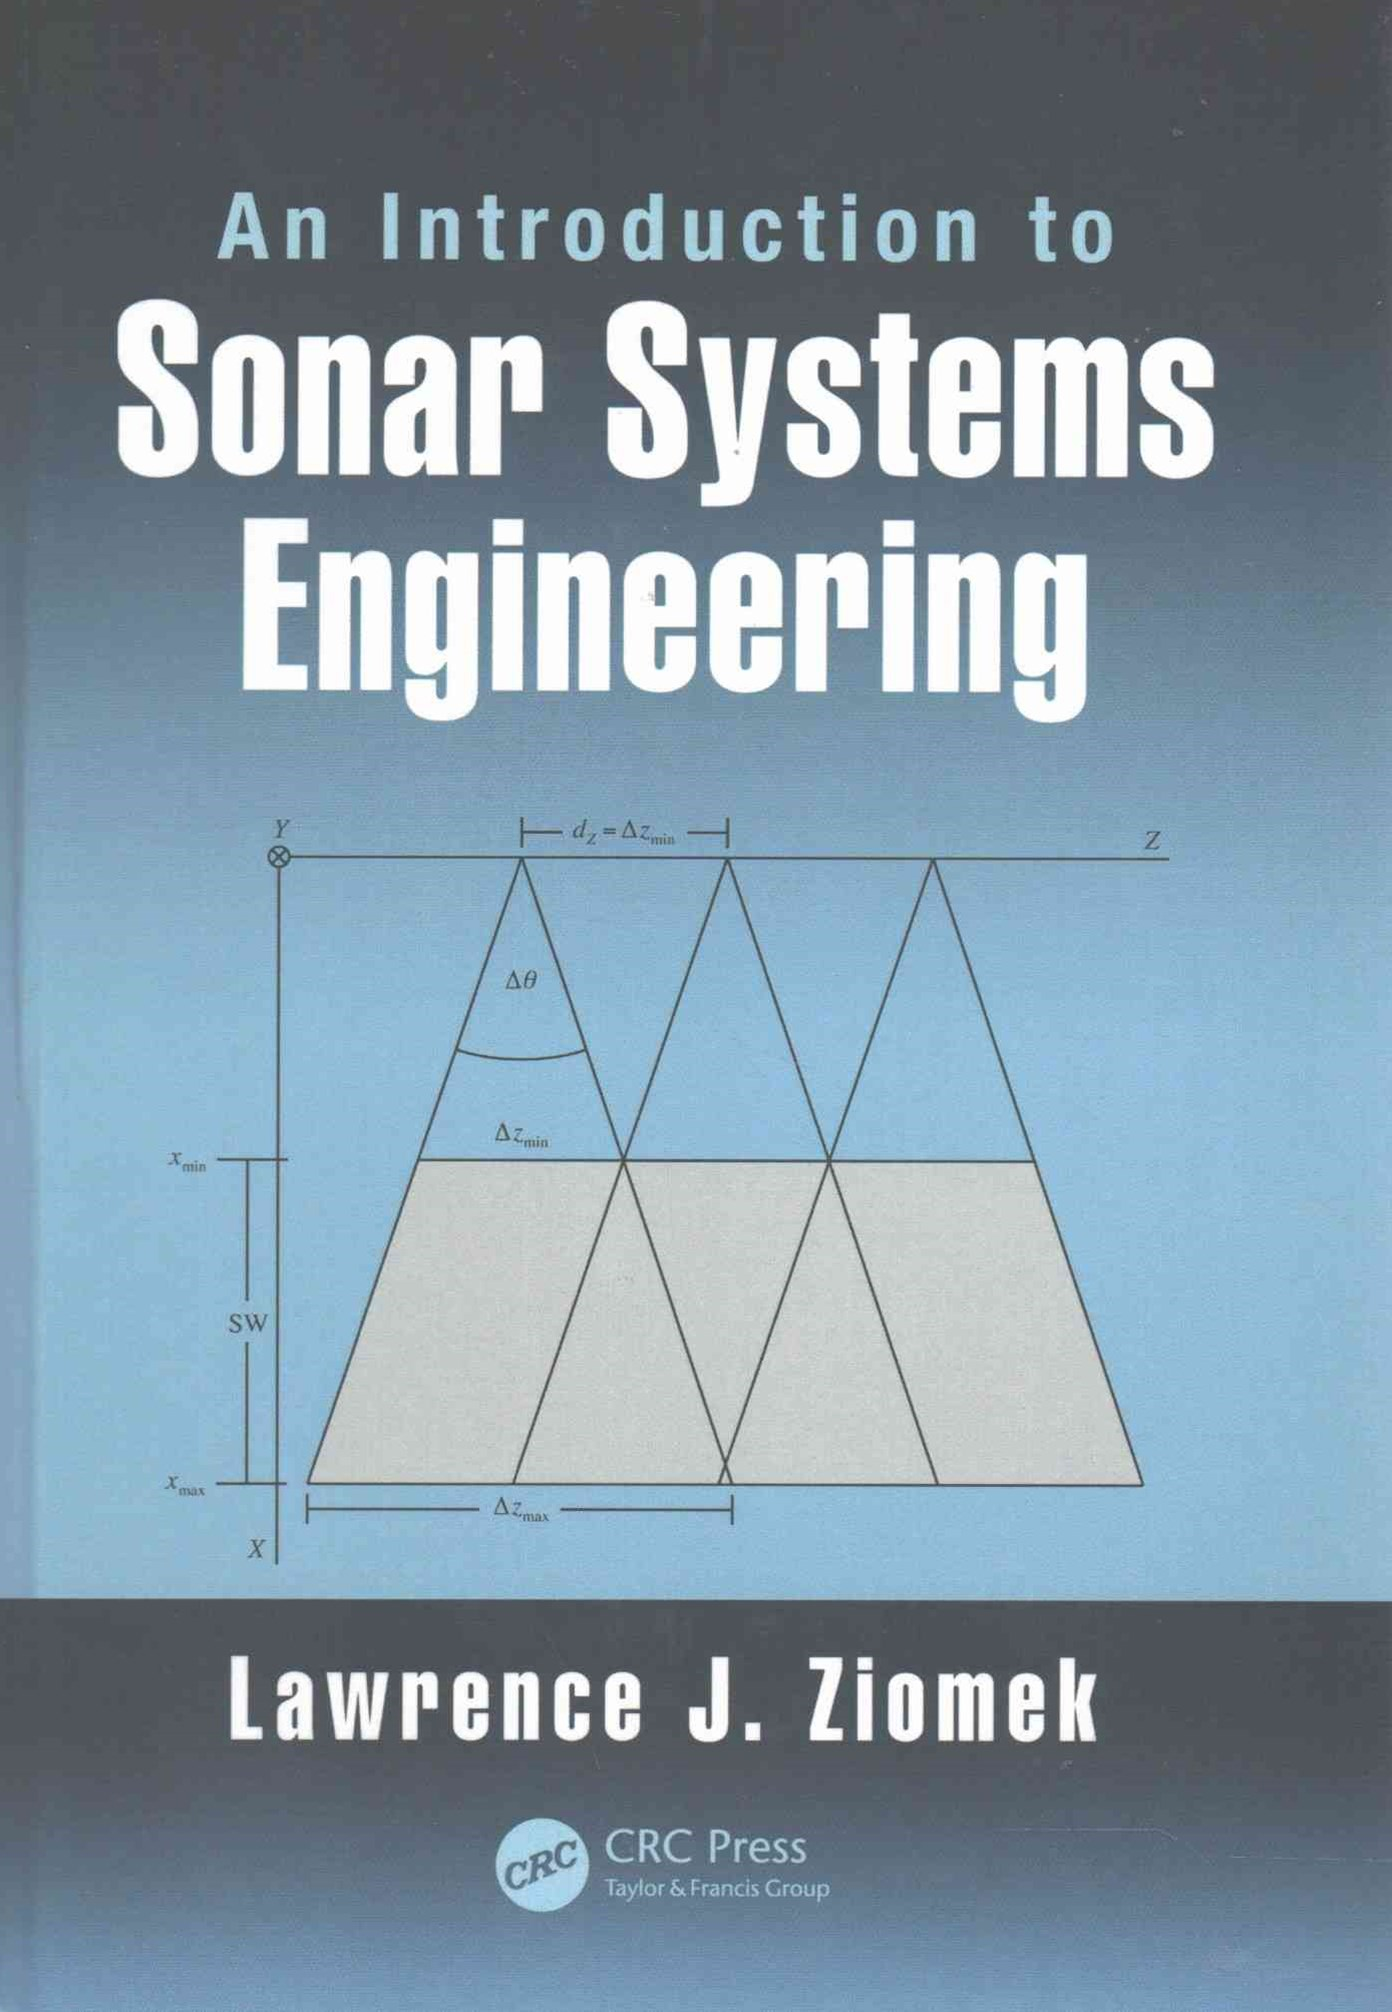 Introduction to Sonar Systems Engineering